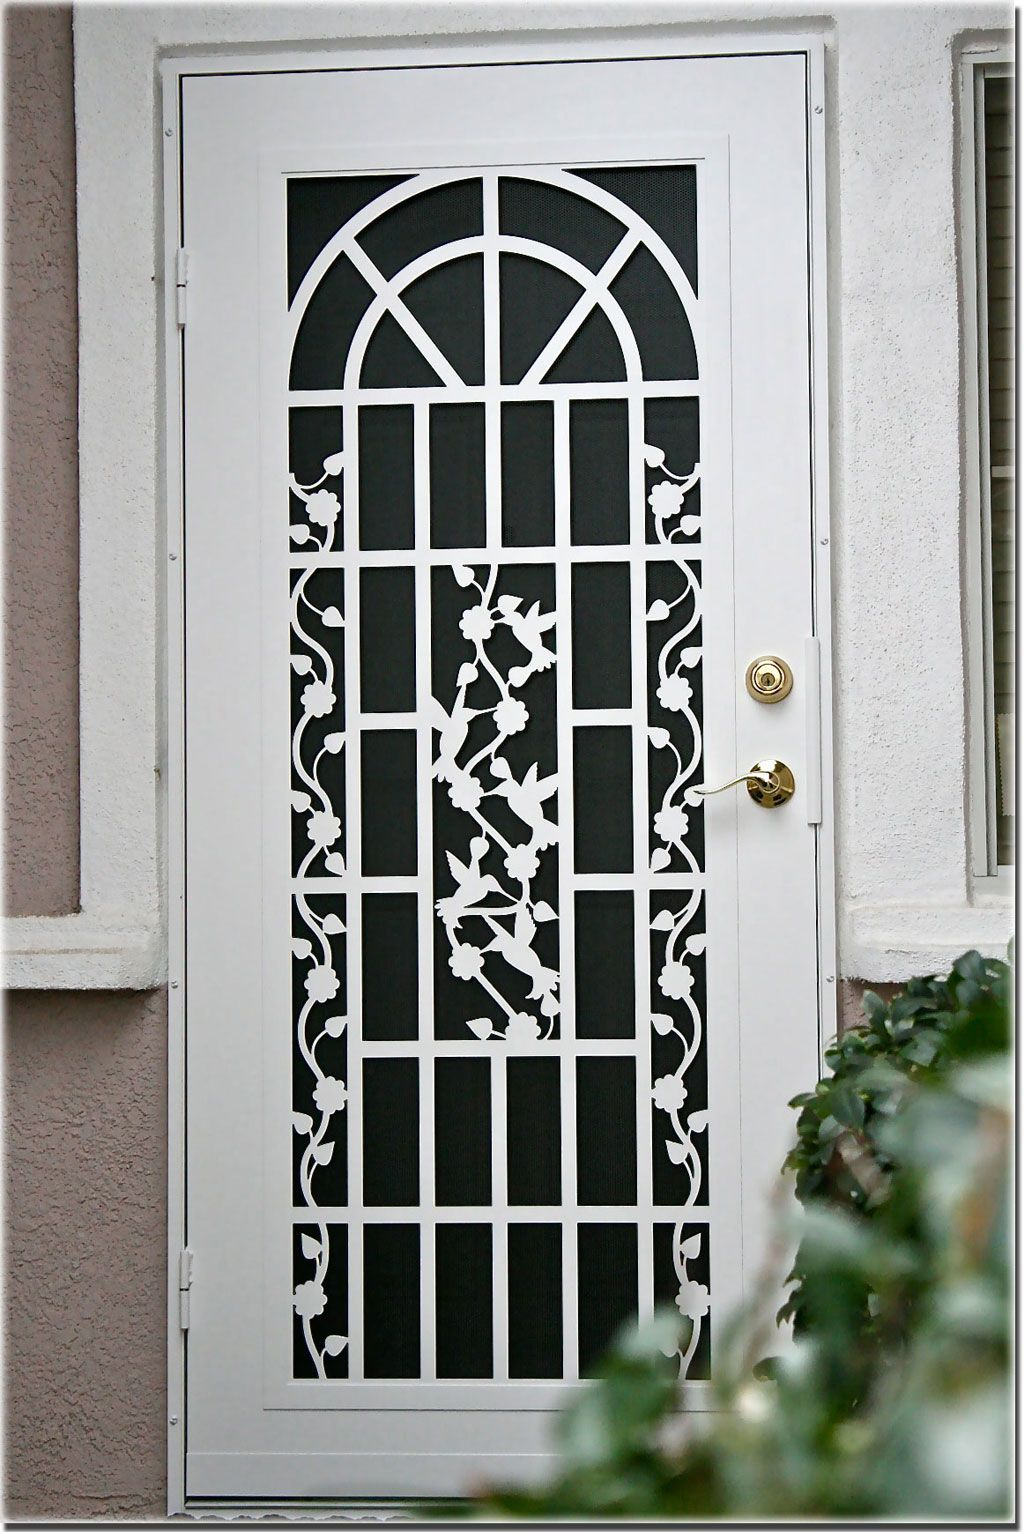 Decorative Security Screen Door Google Search Security Door